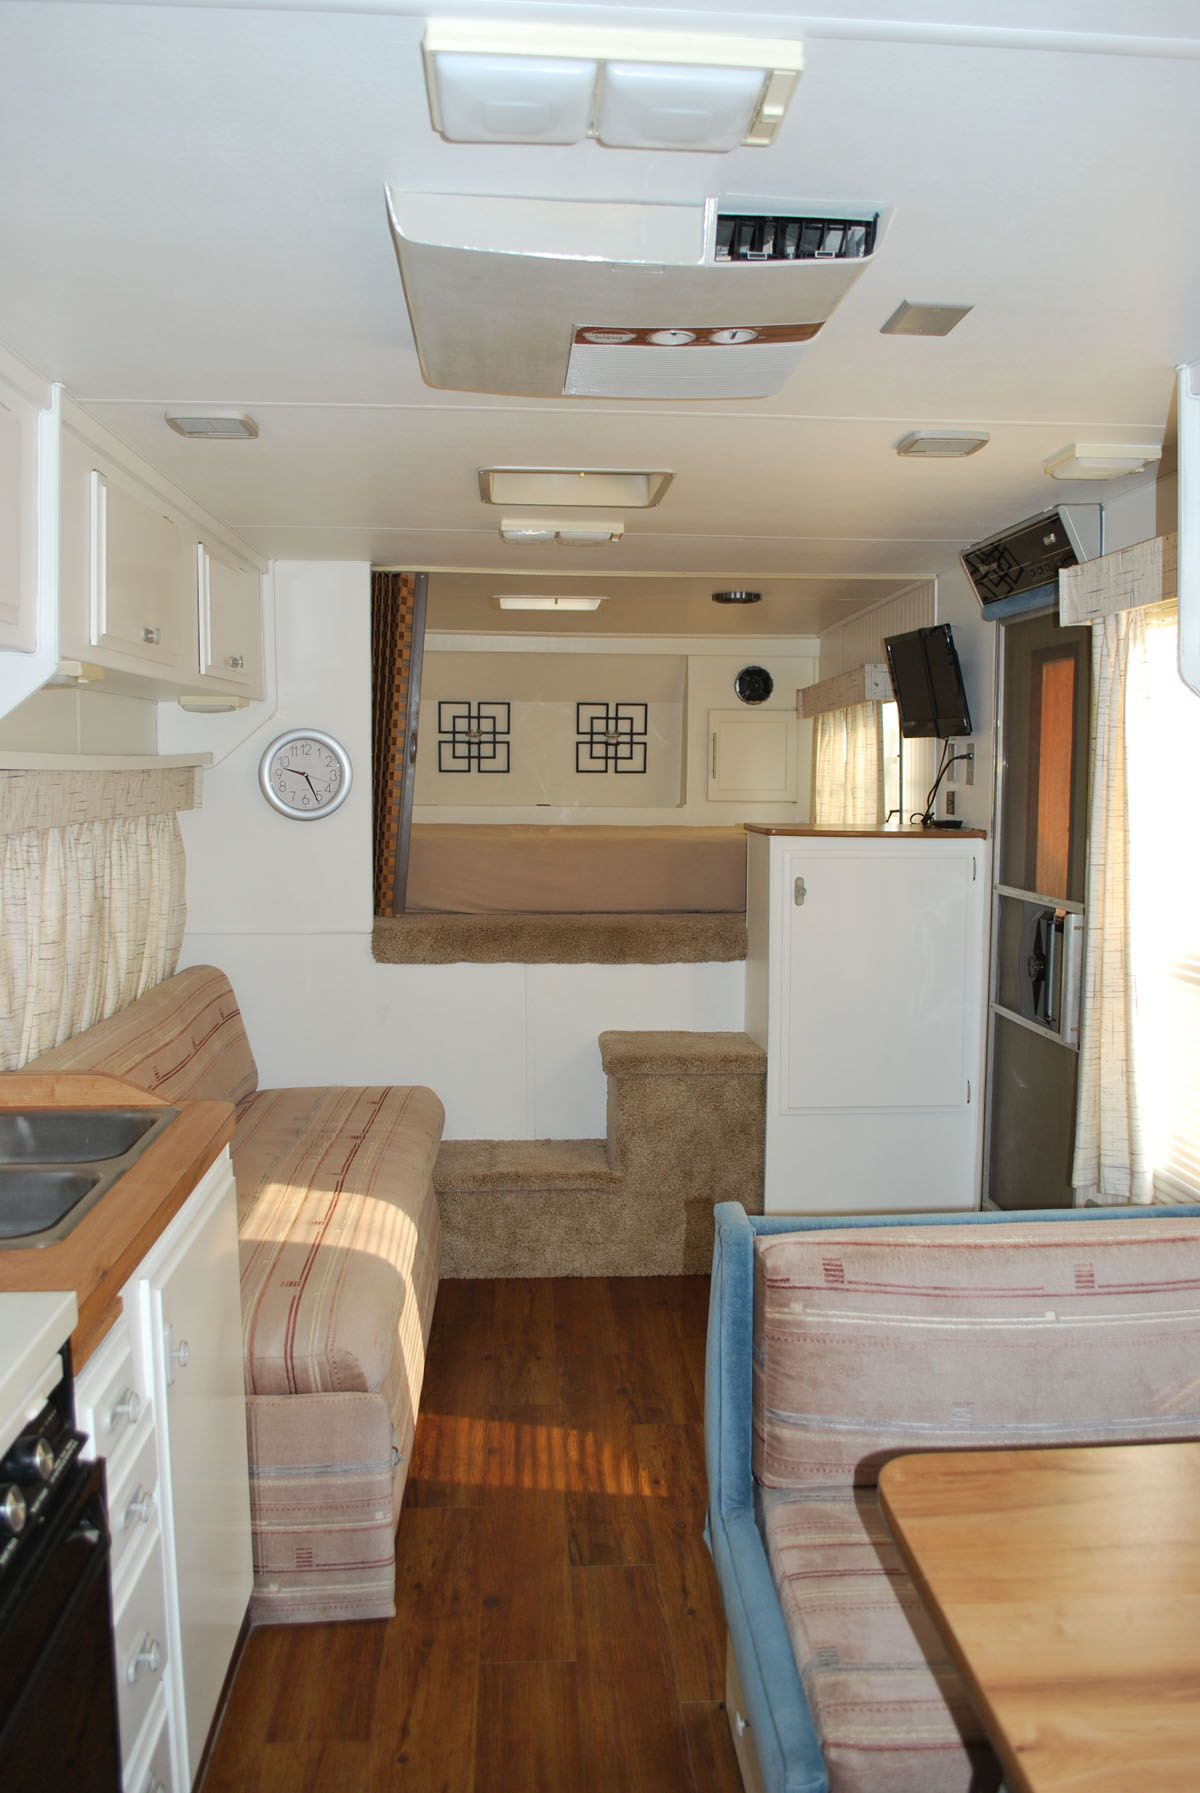 Redone interior of 1985 fleetwood prowler camper interior design rv makeover cool campers